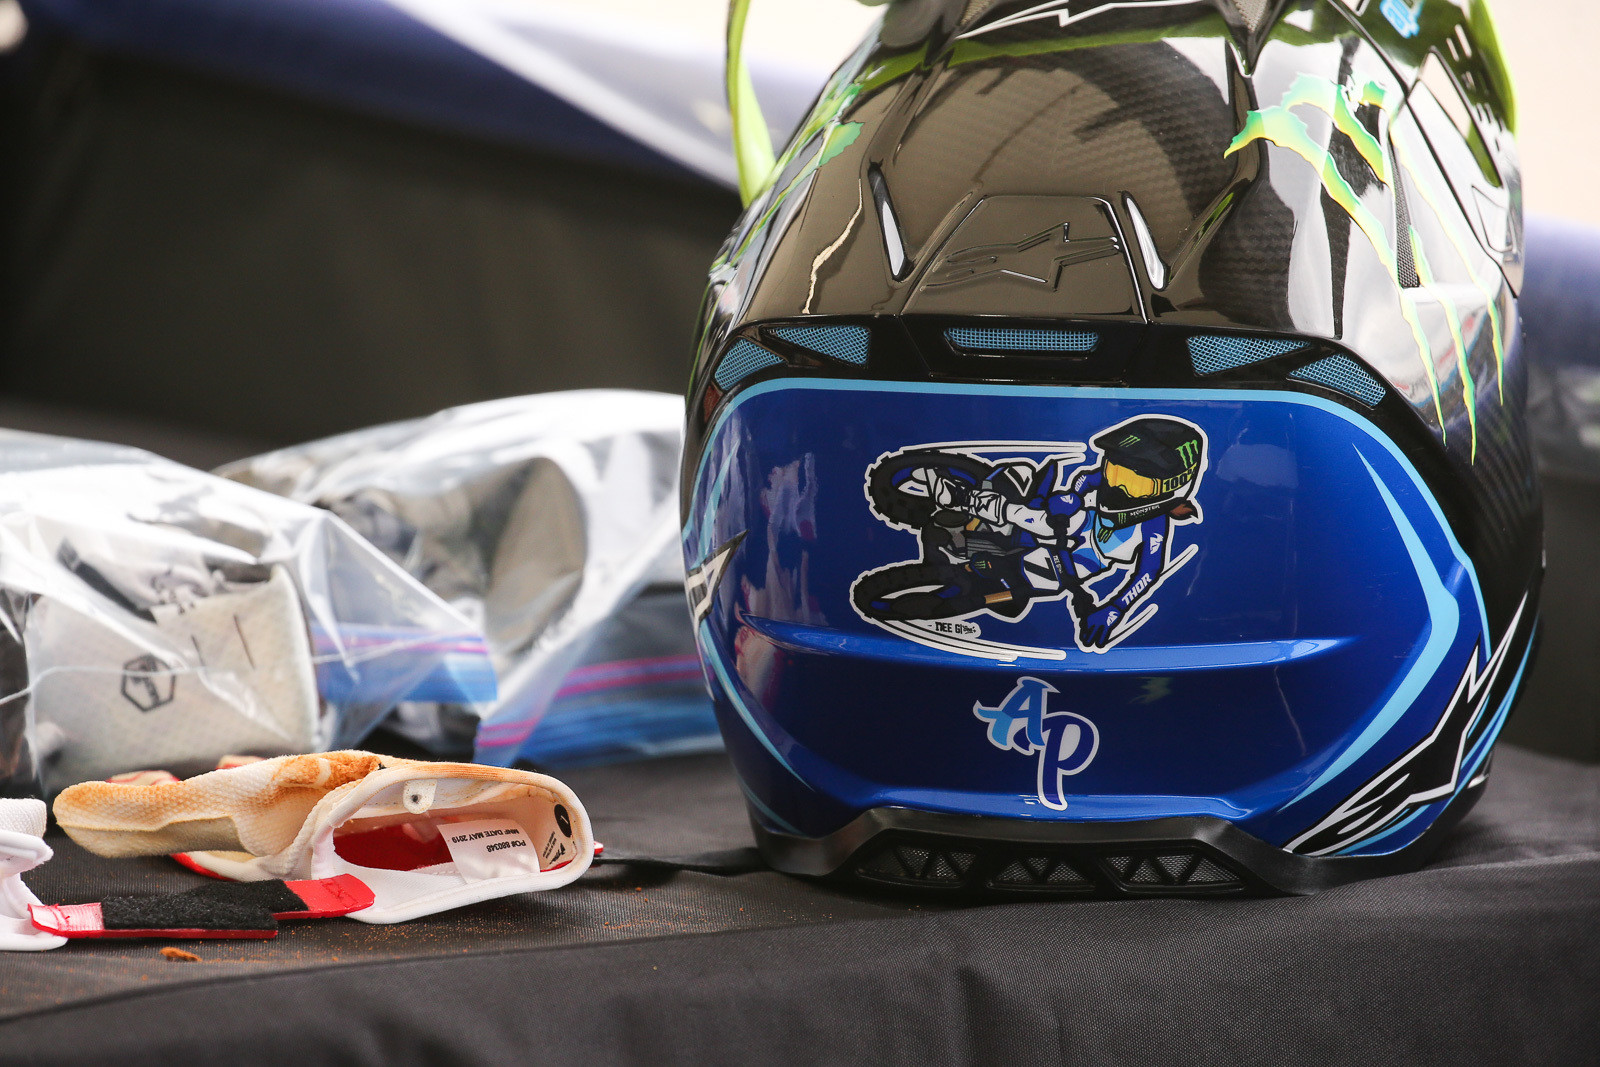 We like the 'toon on AP's Alpinestars lid.